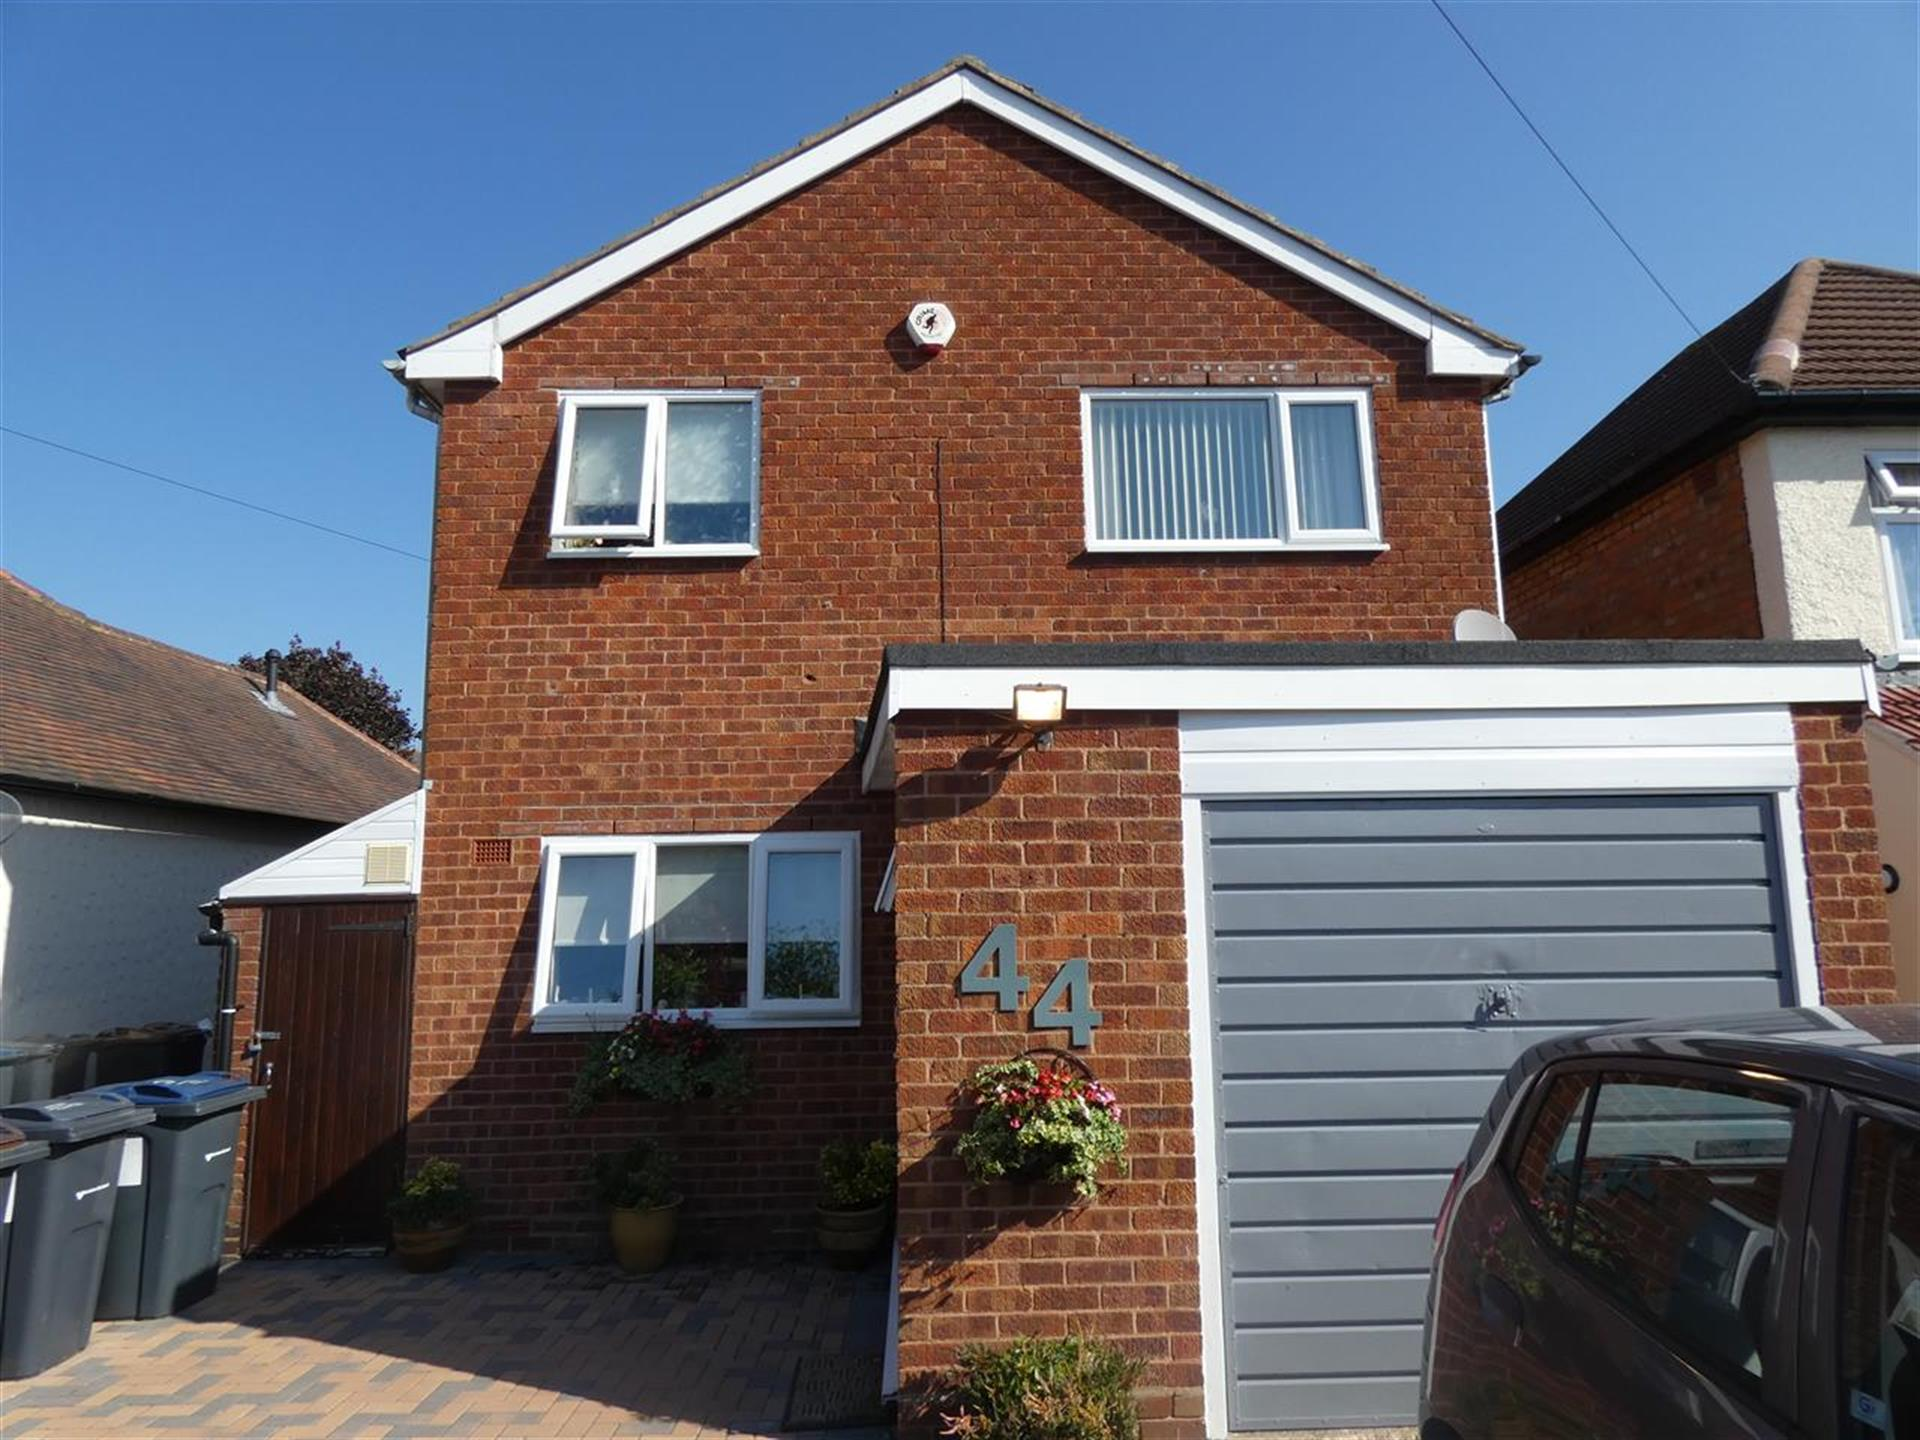 3 Bedroom Detached House For Sale - Main Picture